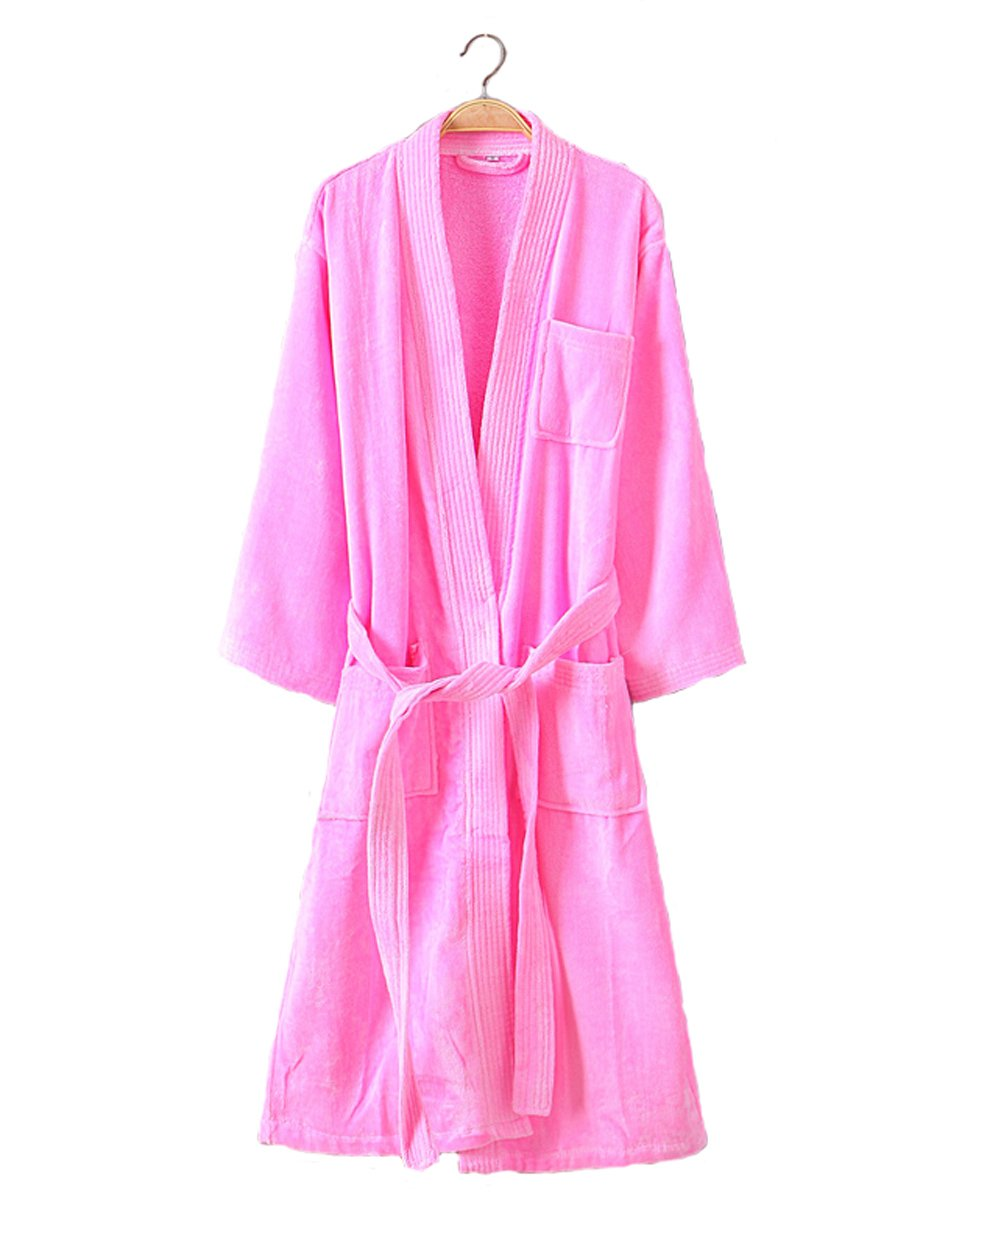 Cahayi Womens Robe Soft Cotton Lightweight Spa Kimono Bathrobe Nightgowns Long